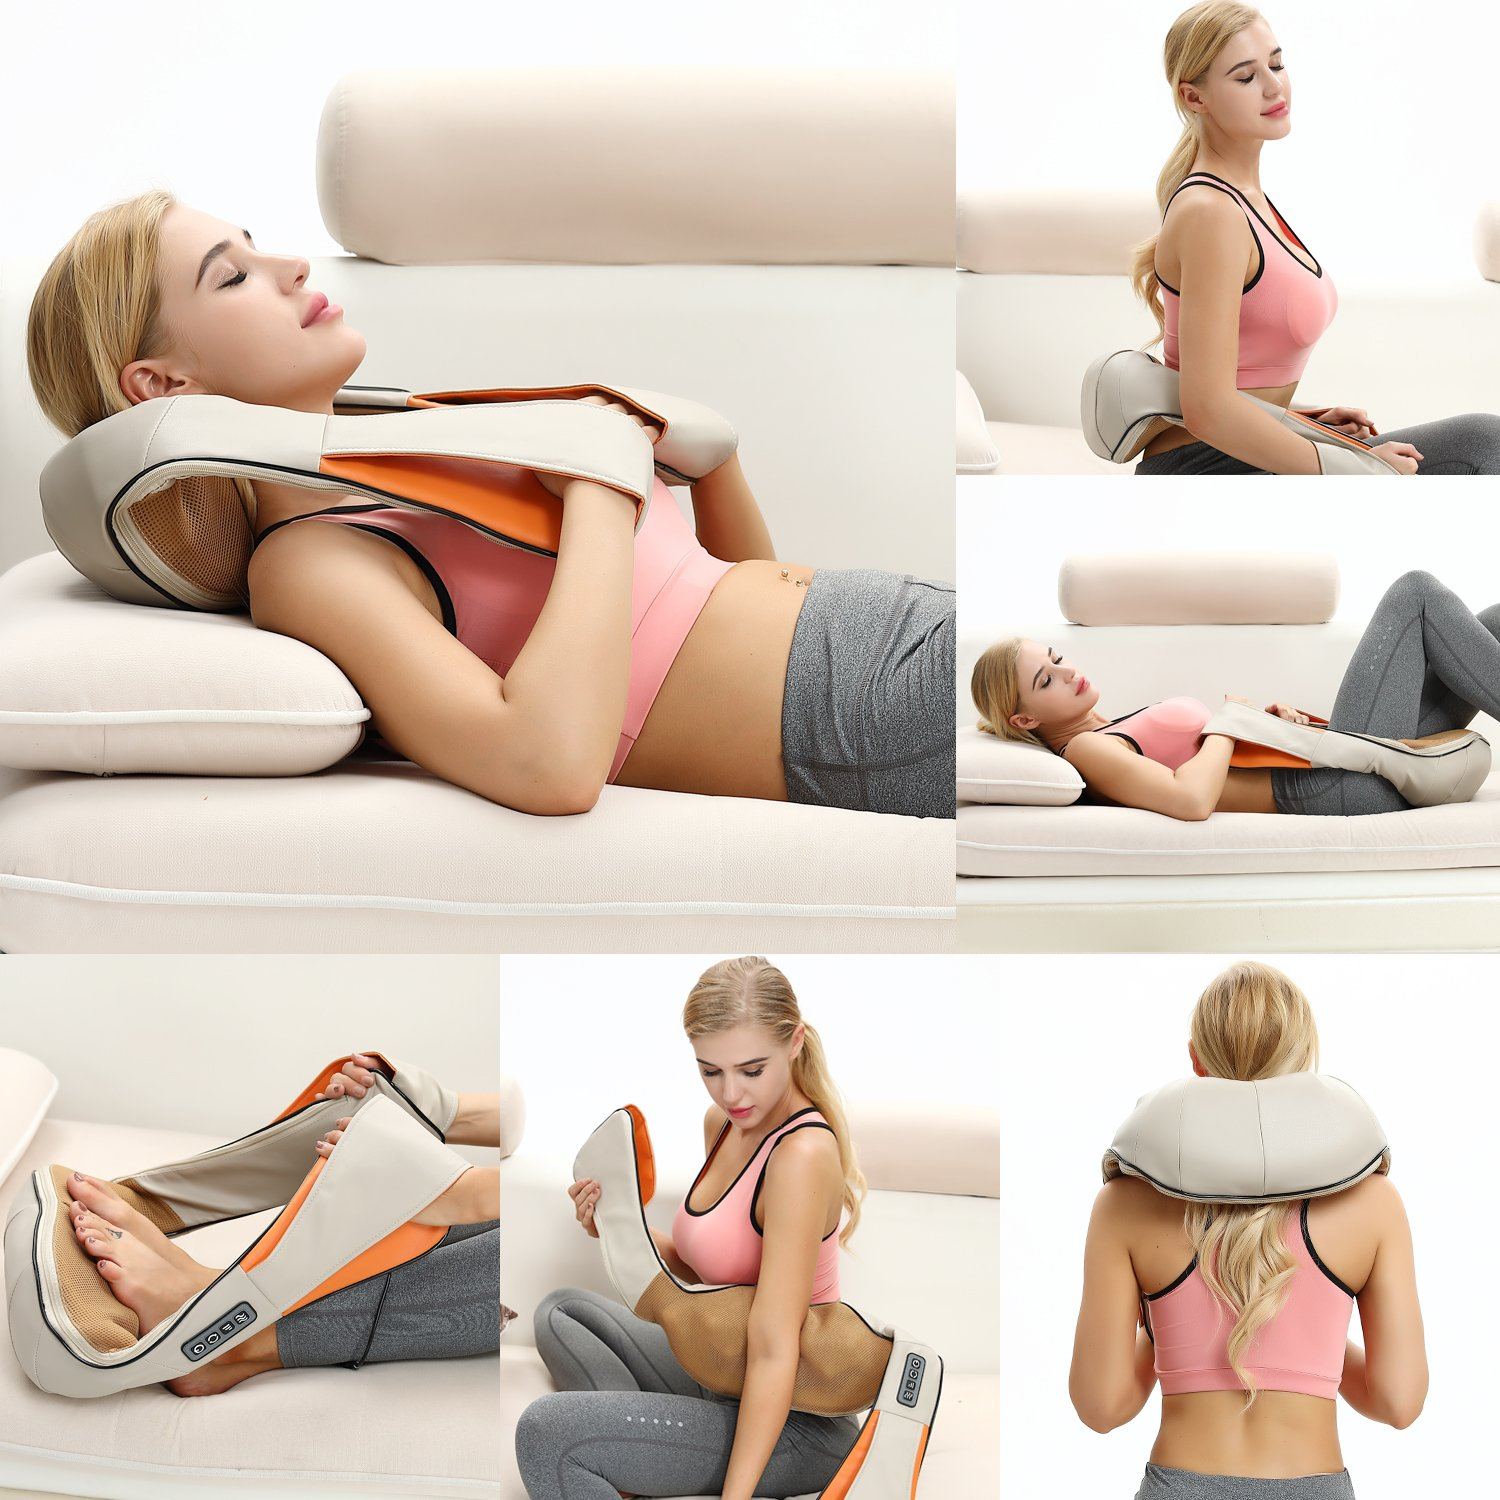 Betorcy Shiatsu Neck Massager - with Heat 4D Kneading, Adjustable Intensity, Relieve Muscle Pain - for Neck, Back, Shoulders, Legs, Foot